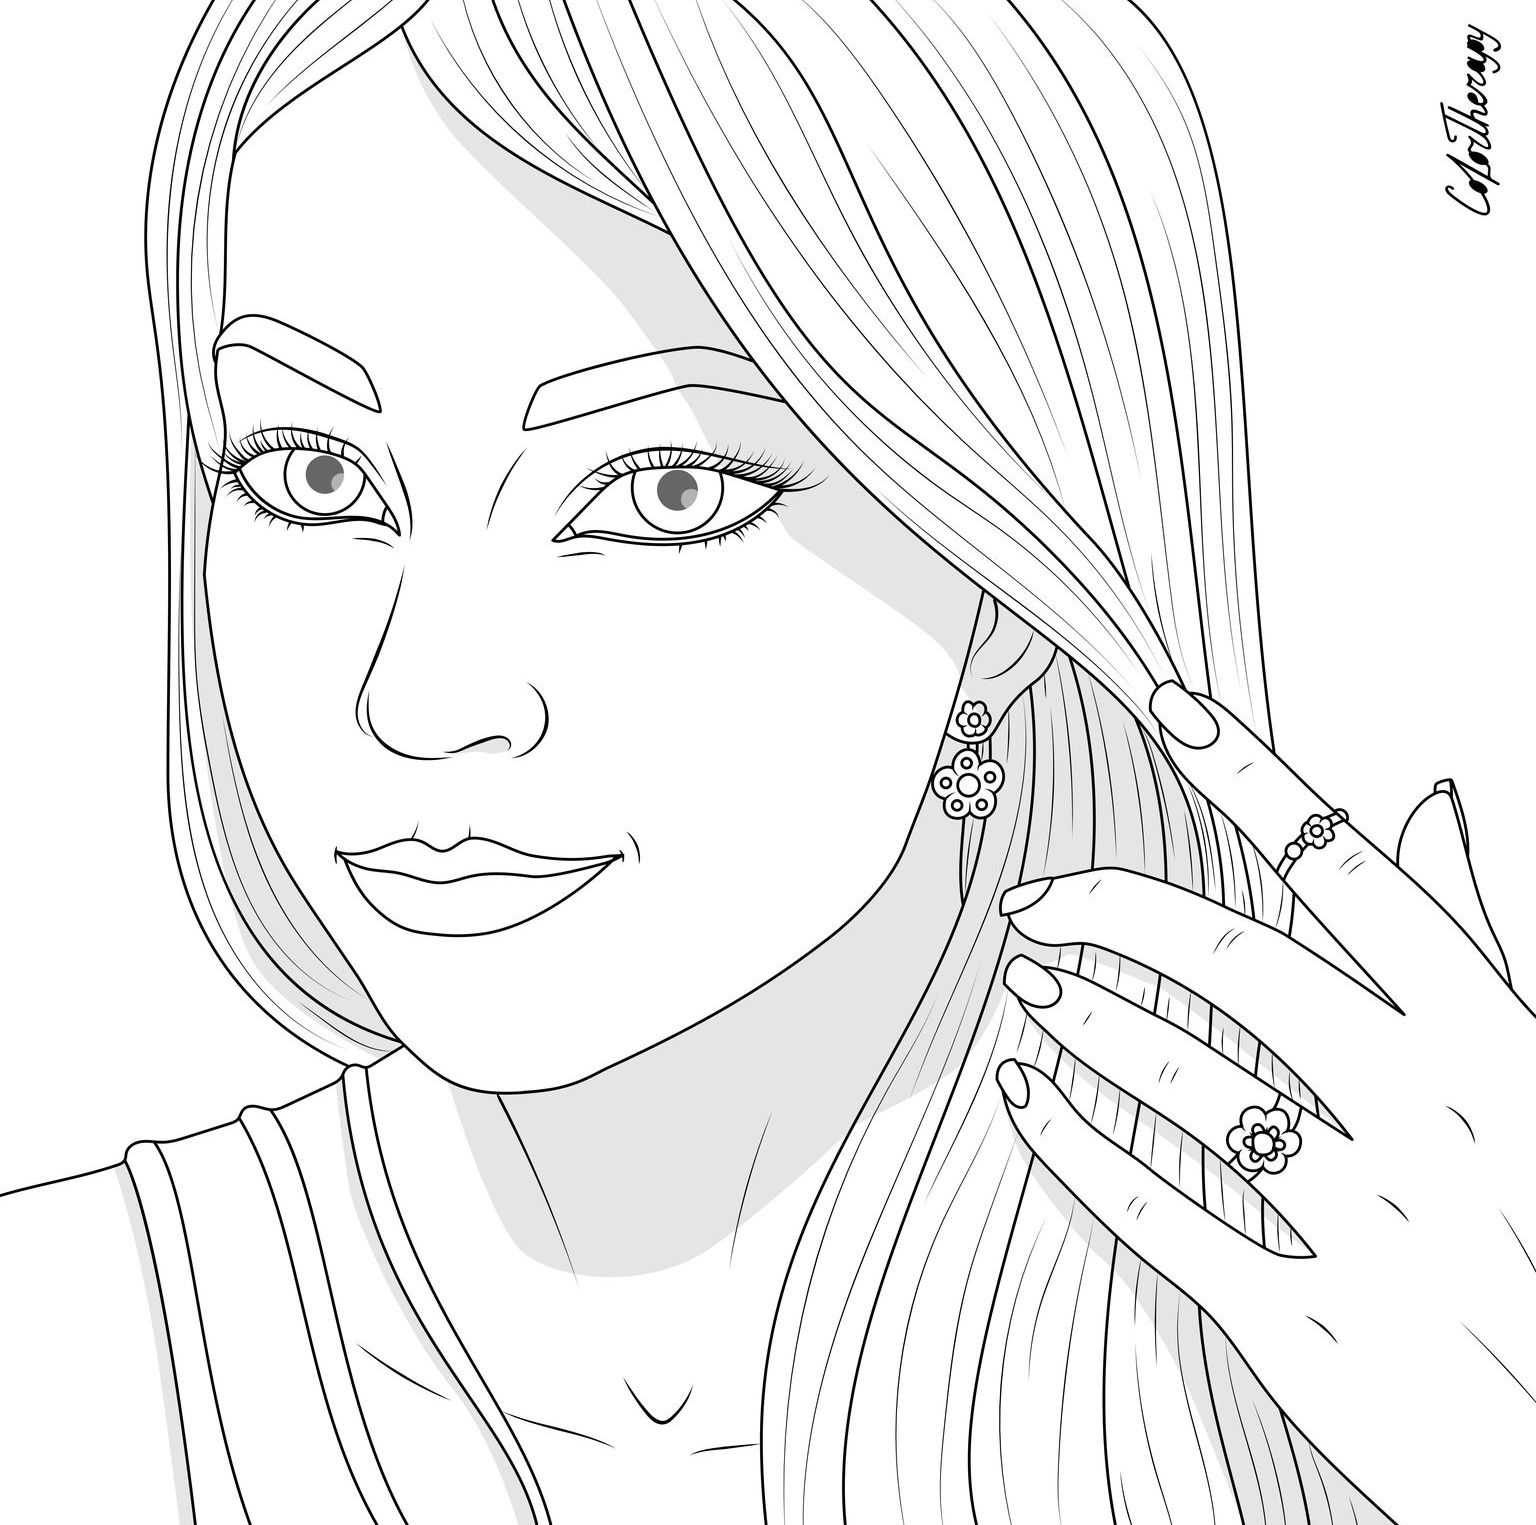 Totally Free Coloring Pages To Unwind While We Re On Social Distancing With Color Therapy App People Coloring Pages Coloring Pages Color Therapy